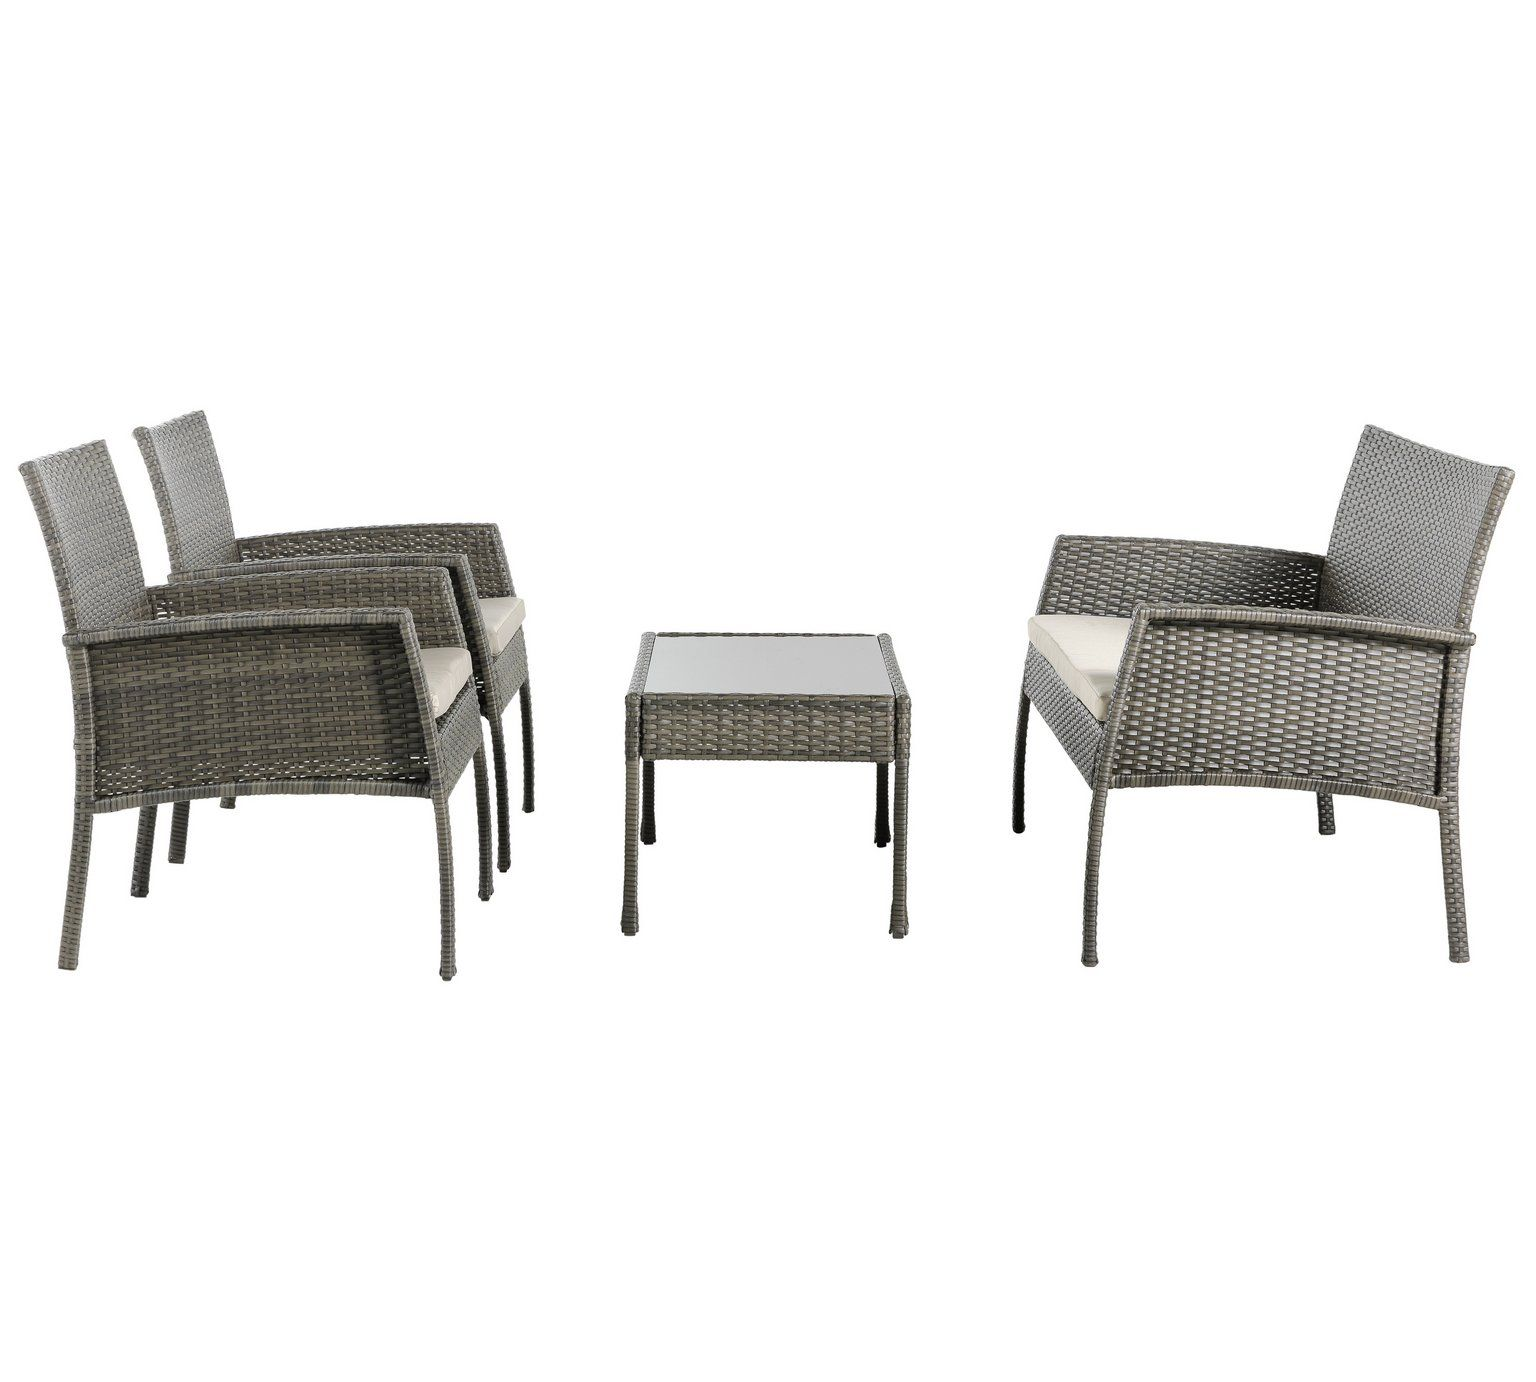 Buy Home Lucia 4 Seater Garden Sofa At Argos Co Uk Visit Argos Co Uk To Shop Online For Garden Table A Outdoor Furniture Sets Sofa Set Garden Table And Chairs